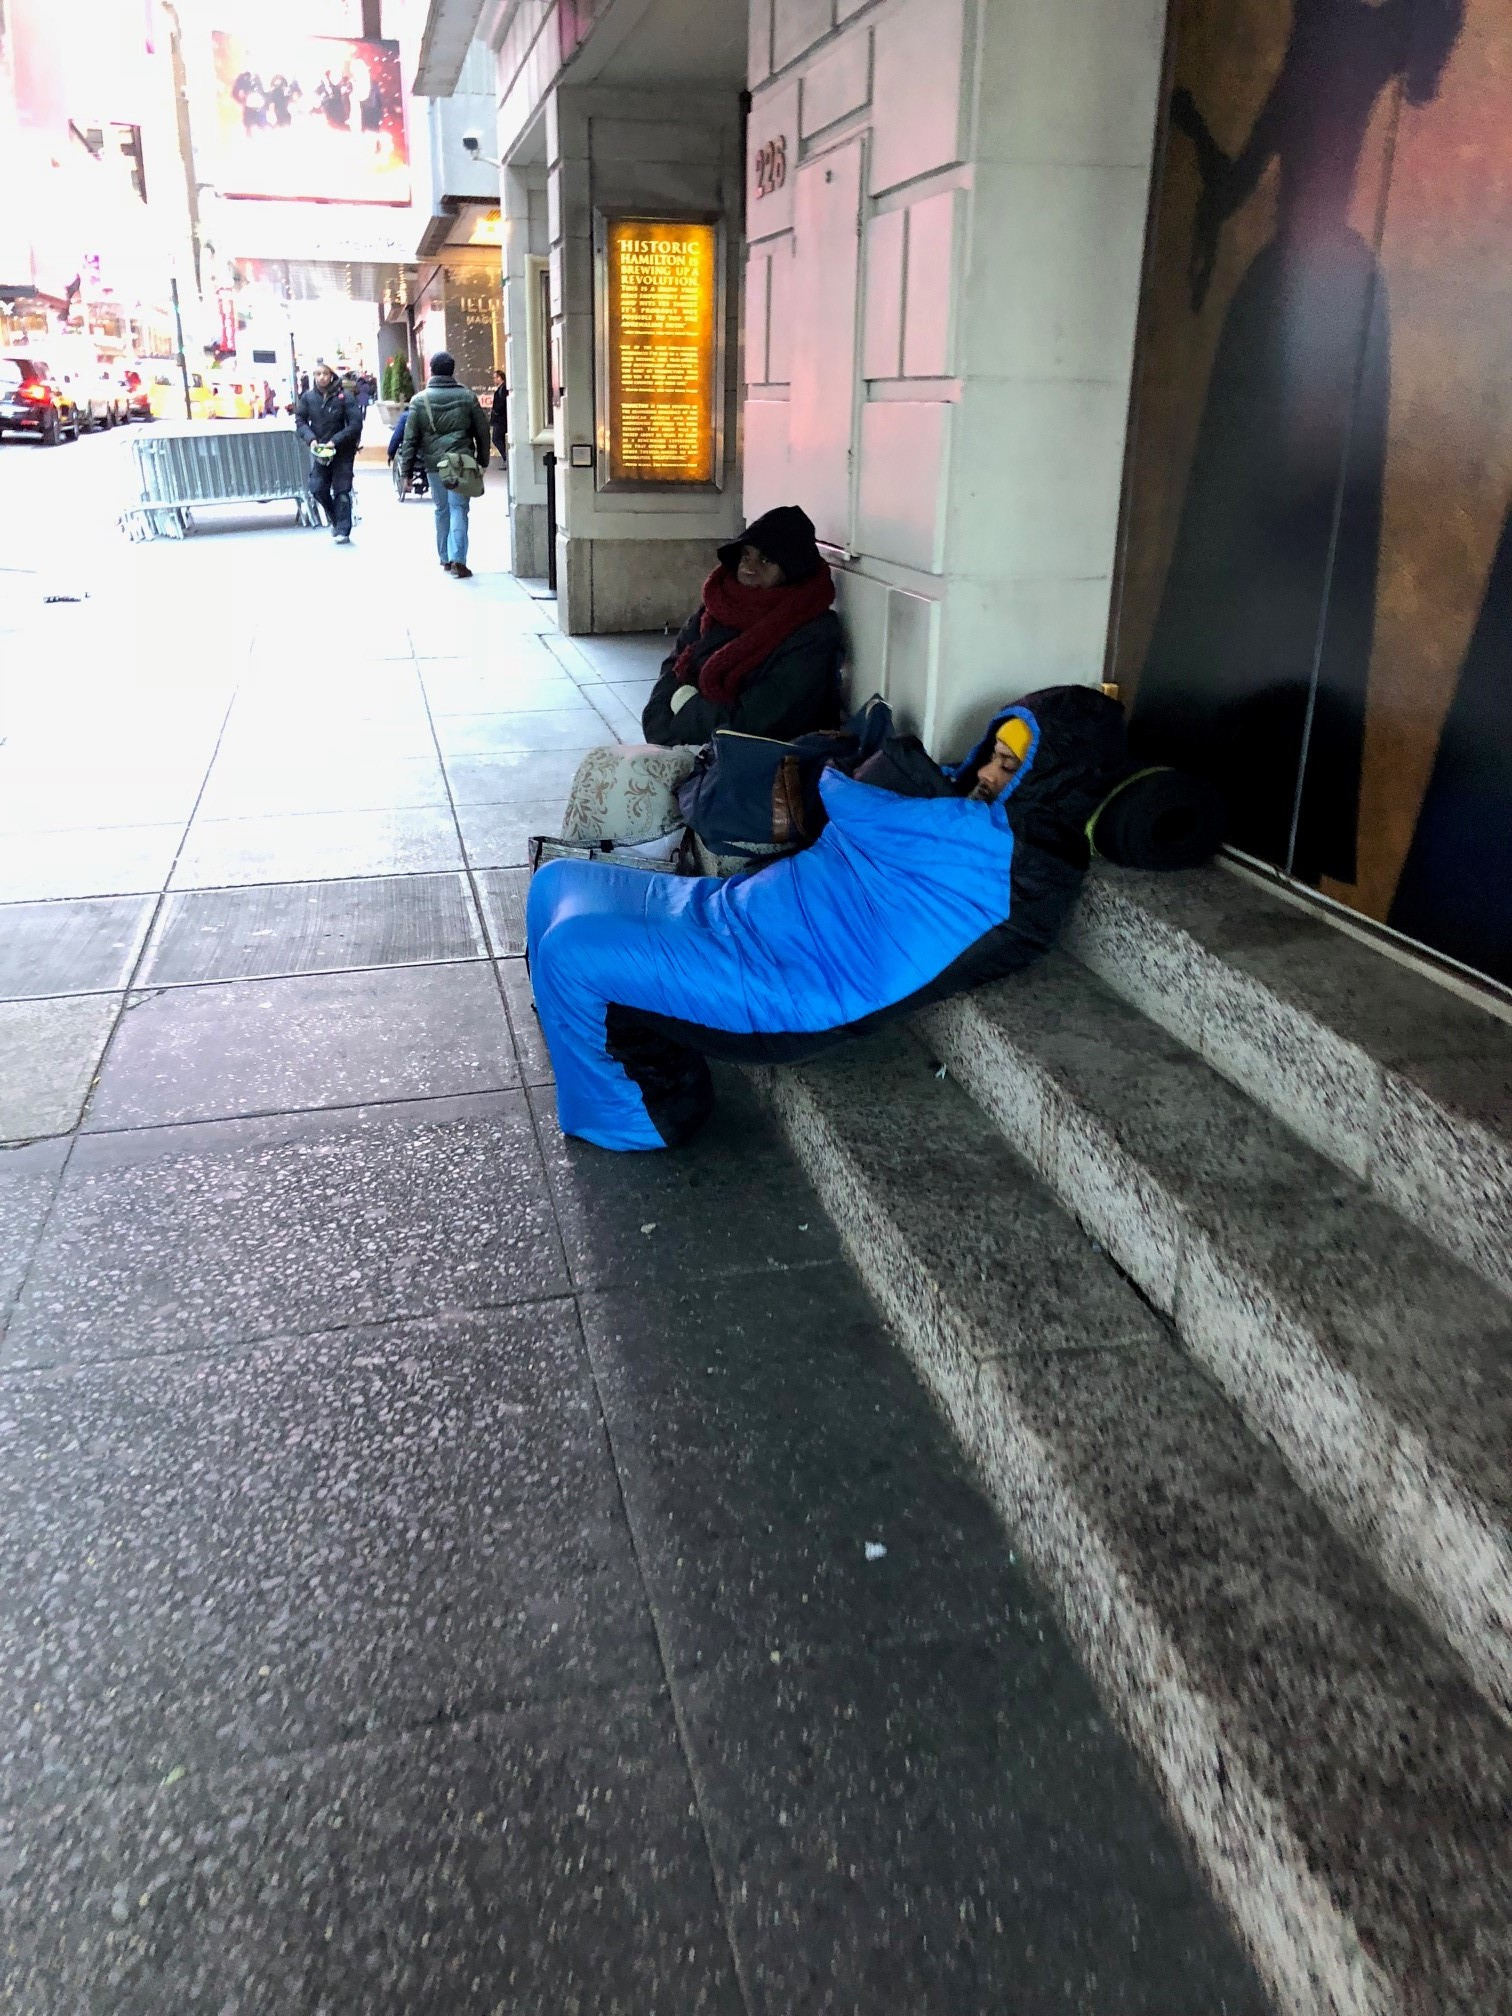 A DONATION OF $25 WILL BUY 1 NEW SLEEPING BAG. - Your donation is tax deductible. Click here to donate!!100% of donations will be used to purchase sleeping bags that can help to protect individuals from below-freezing temperatures, making living and sleeping outside just a little more bearable.